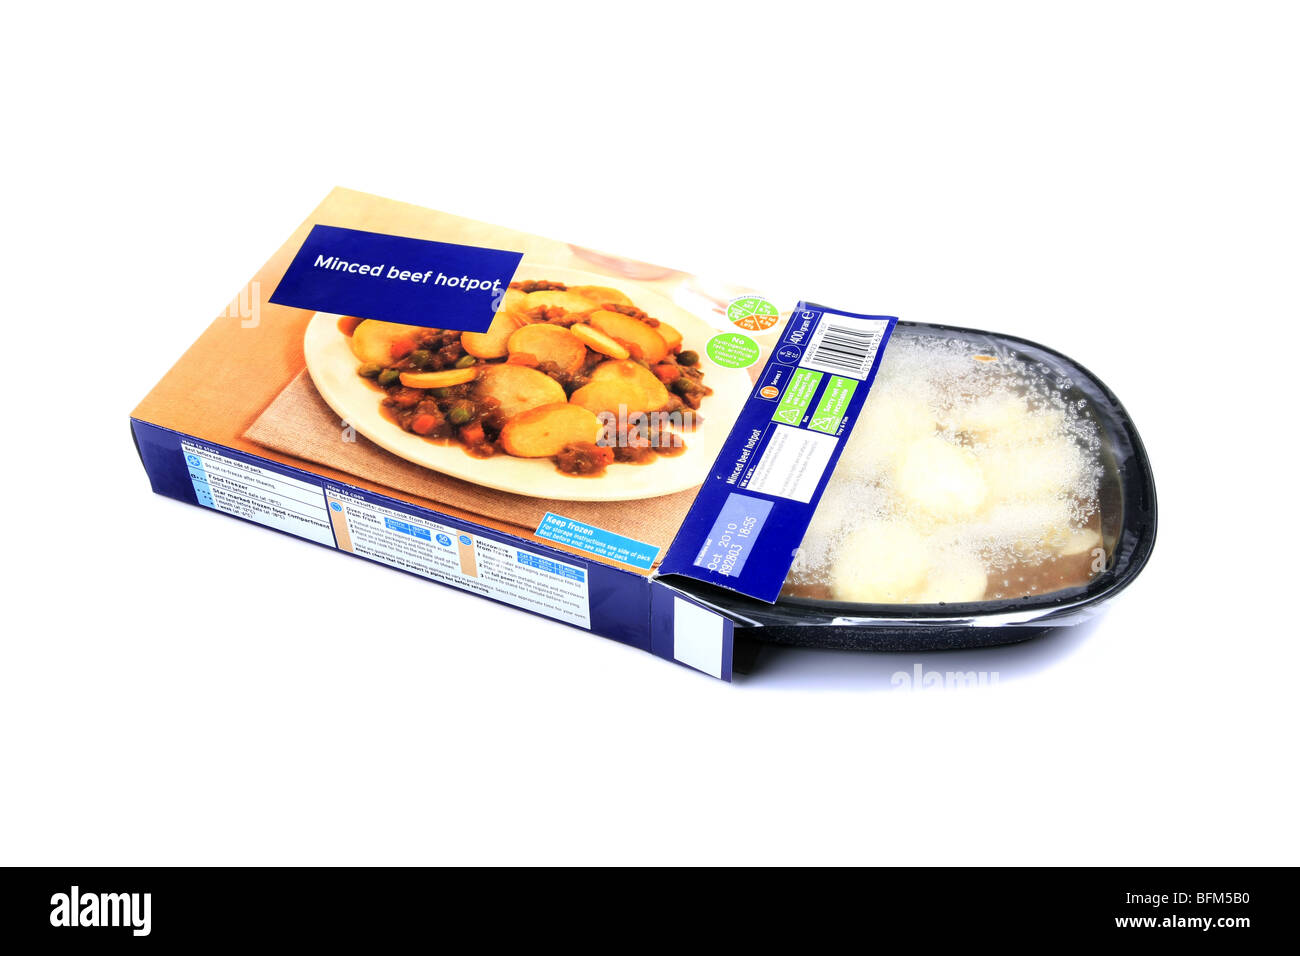 Frozen Minced Beef Hot Pot Ready Dinner cardboard packaging set against a white background - Stock Image